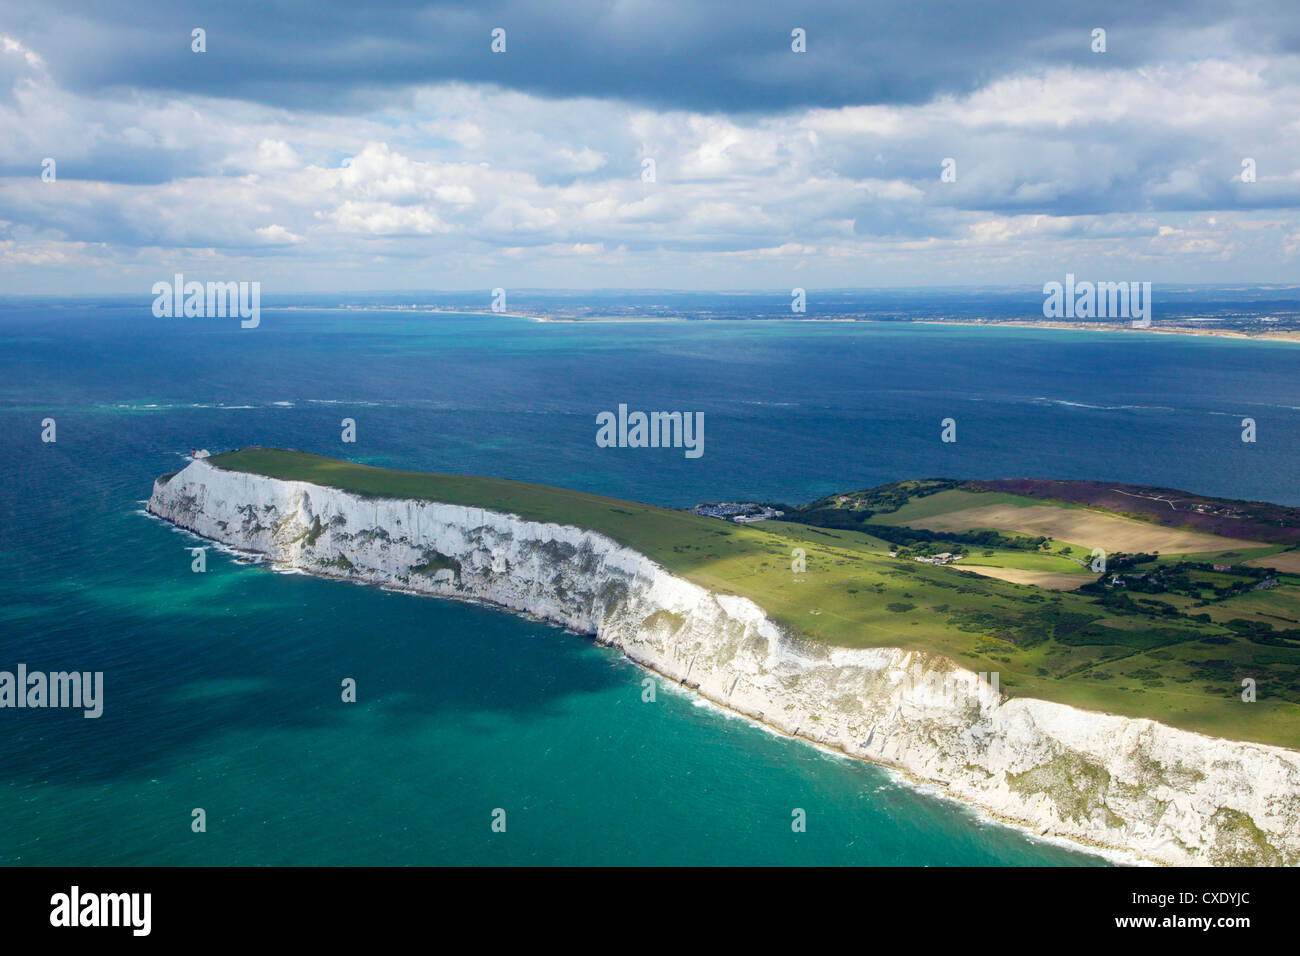 Aerial view of the Needles, Isle of Wight, England, United Kingdom, Europe Stock Photo